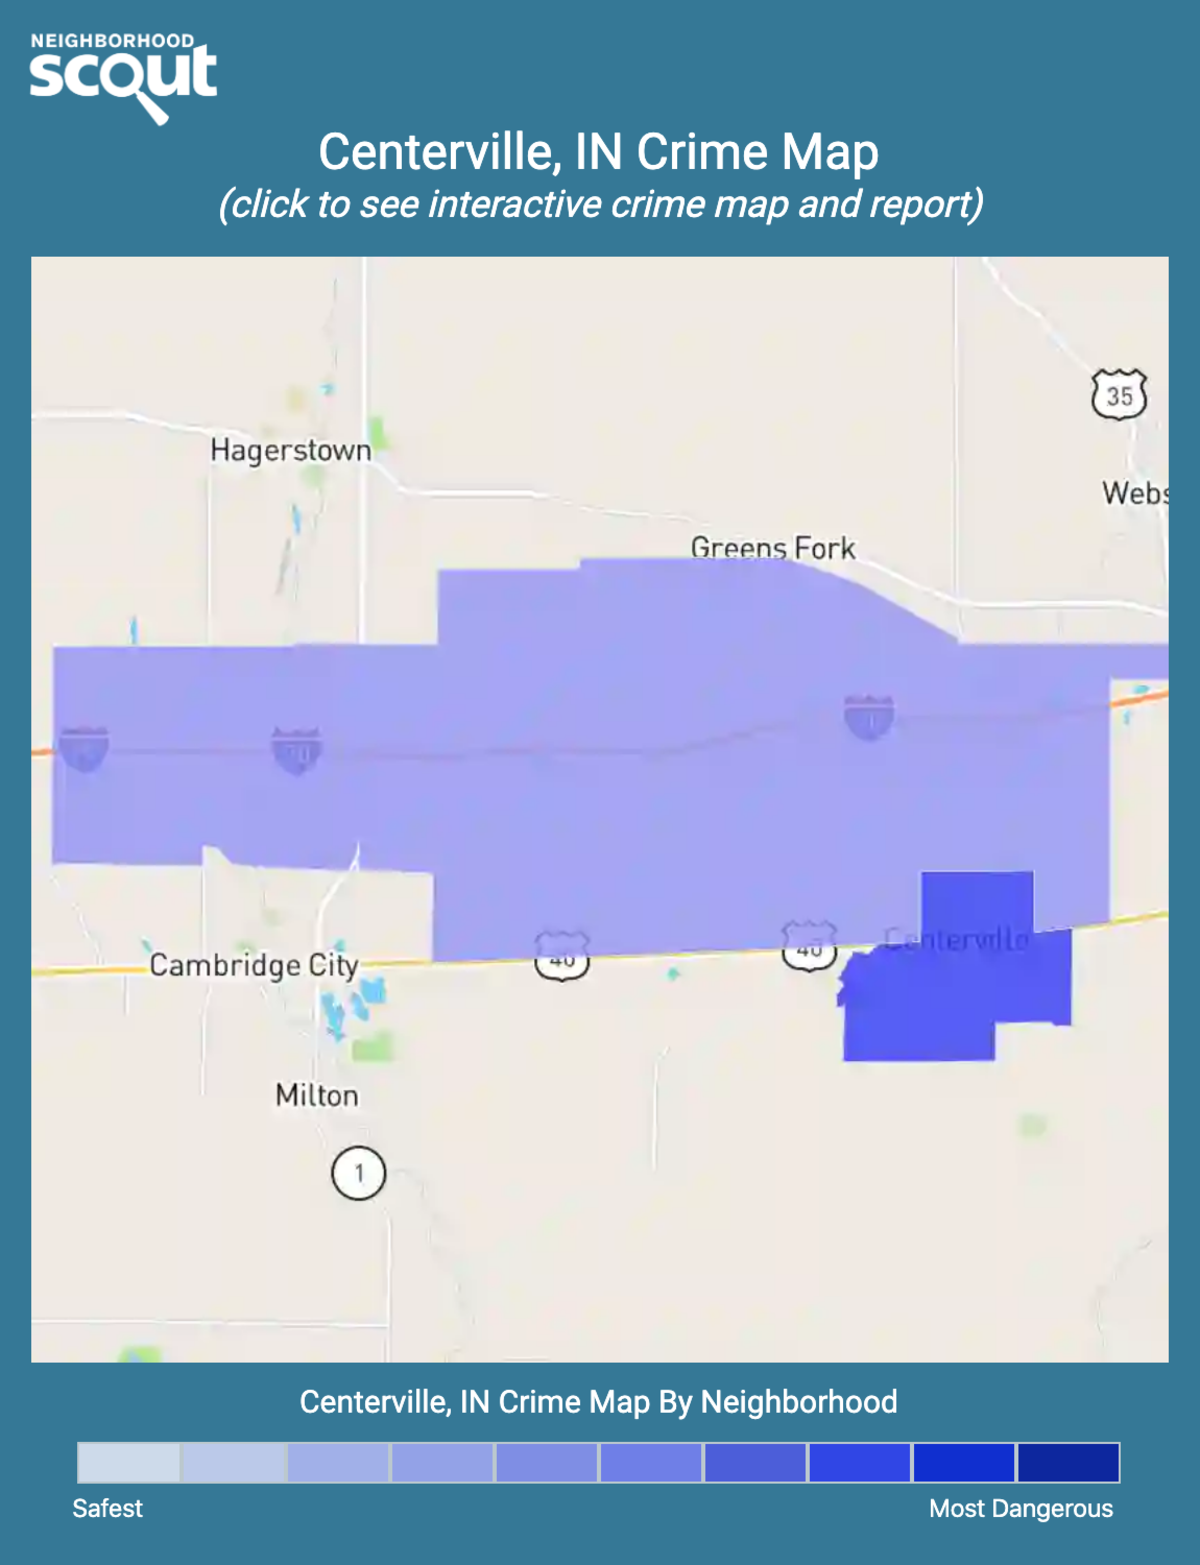 Centerville, Indiana crime map